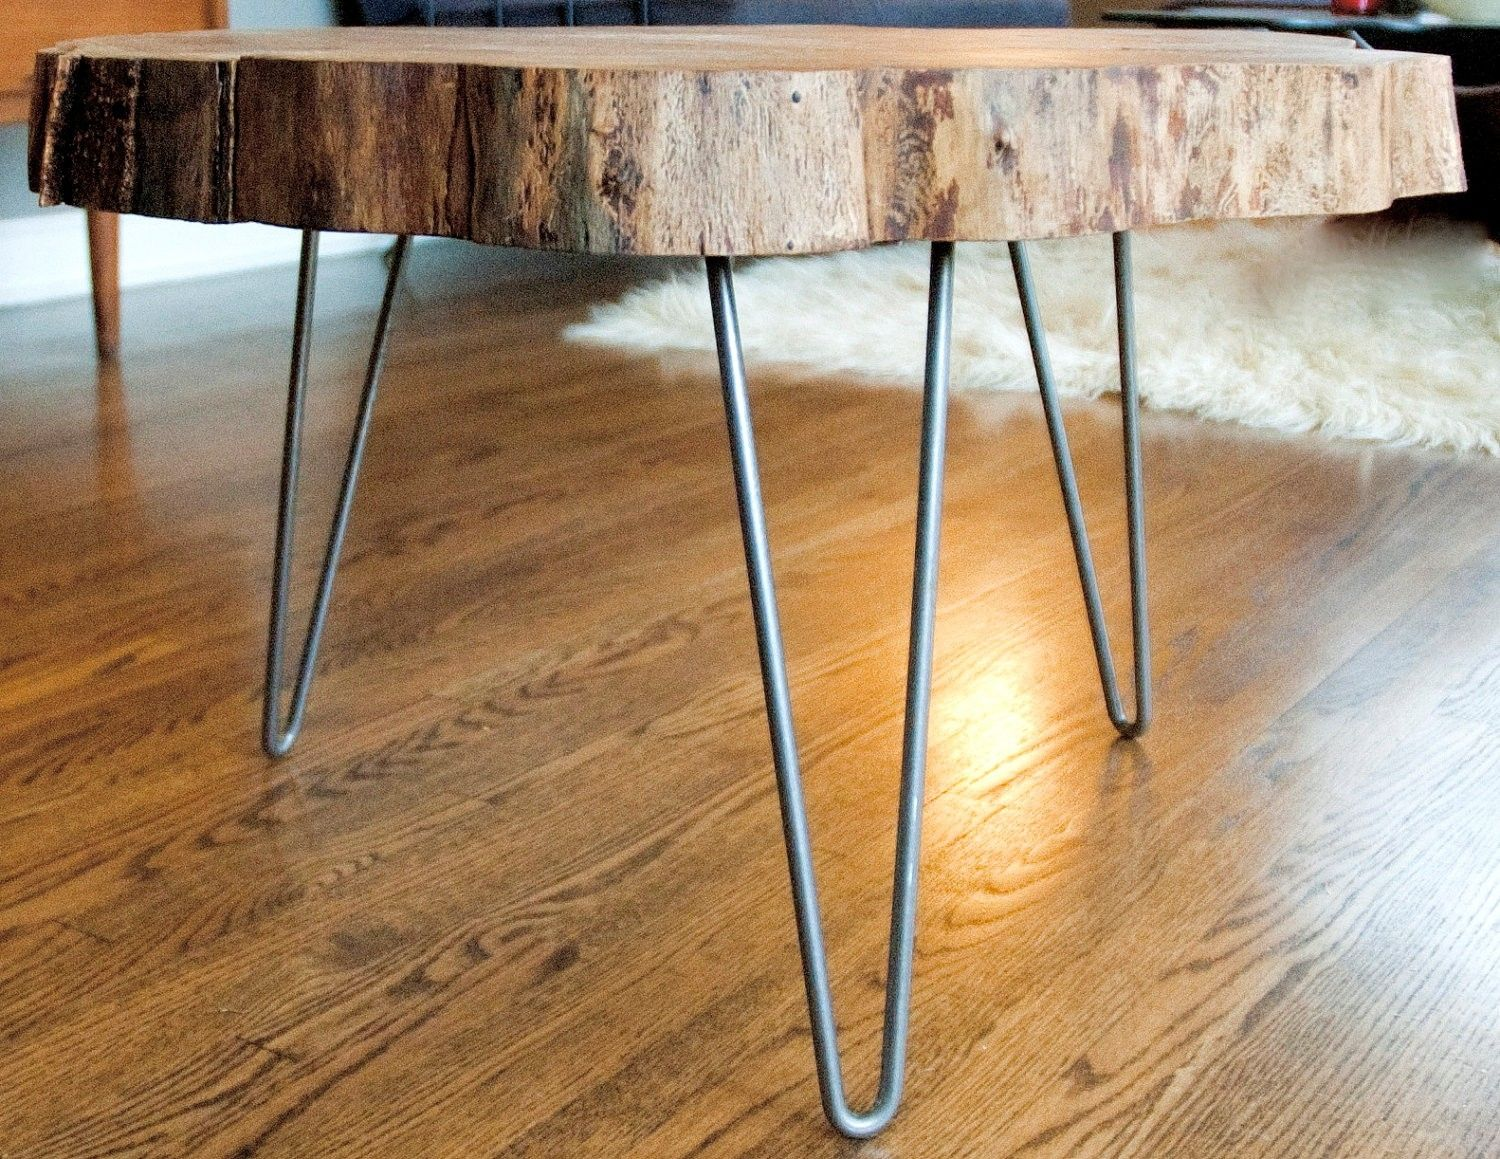 208e8bb809b04 Custom Natural Live Edge Round Slab Side Table   Coffee Table With Steel  Legs by Norsk Valley Workshop